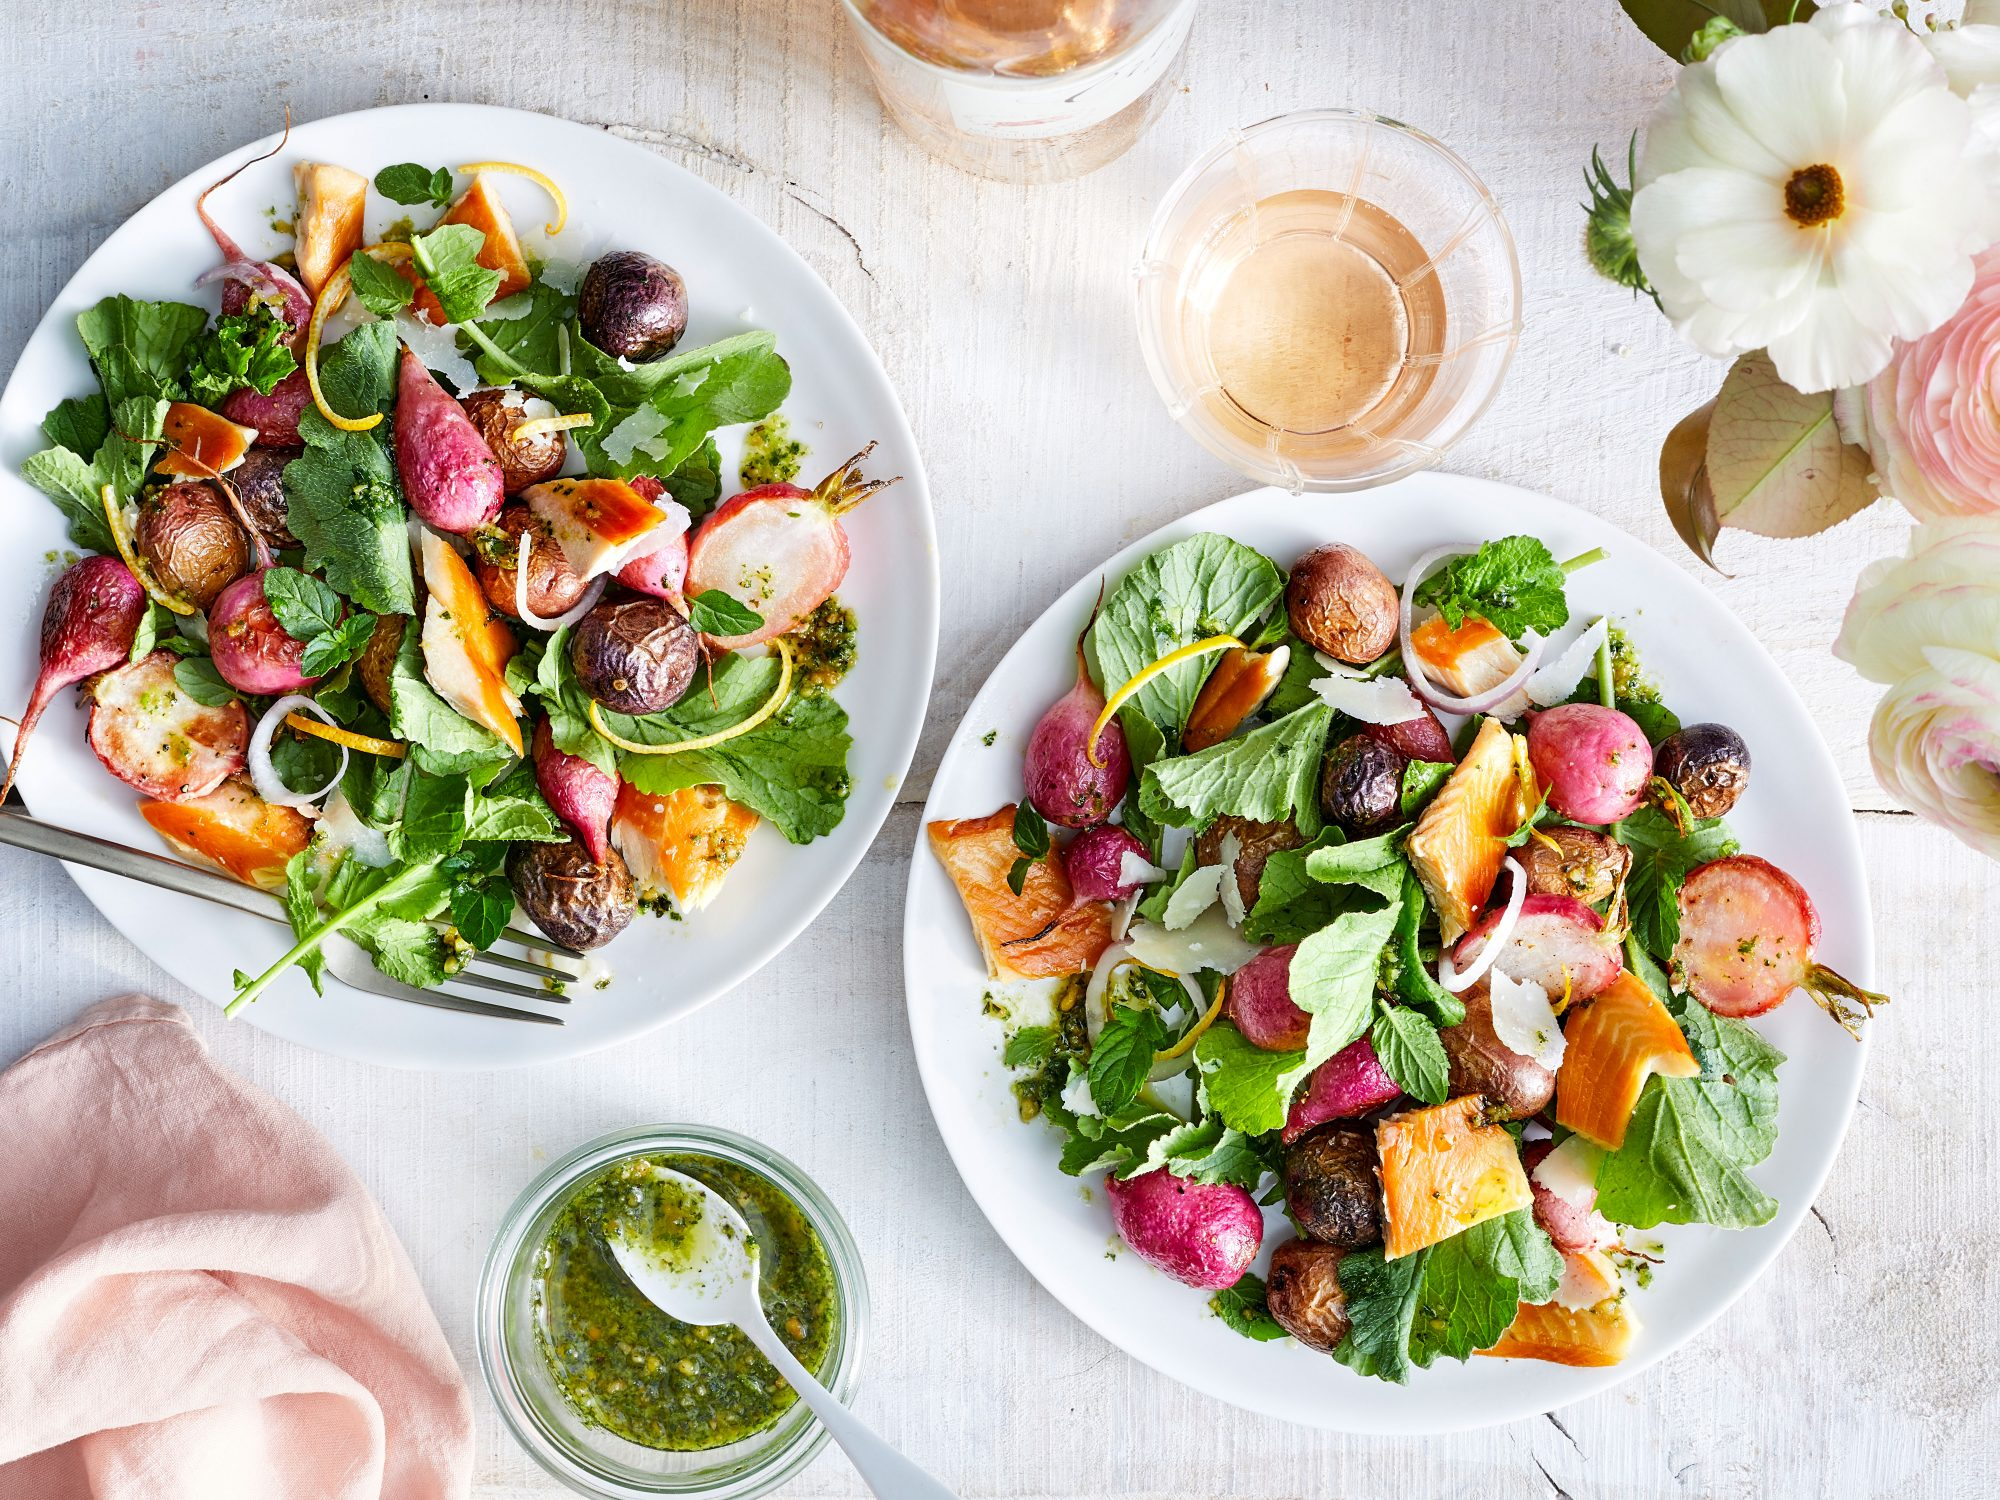 Warm Radish-and-Potato Salad with Smoked Trout and Radish Leaf-and-Mint Pesto Recipe